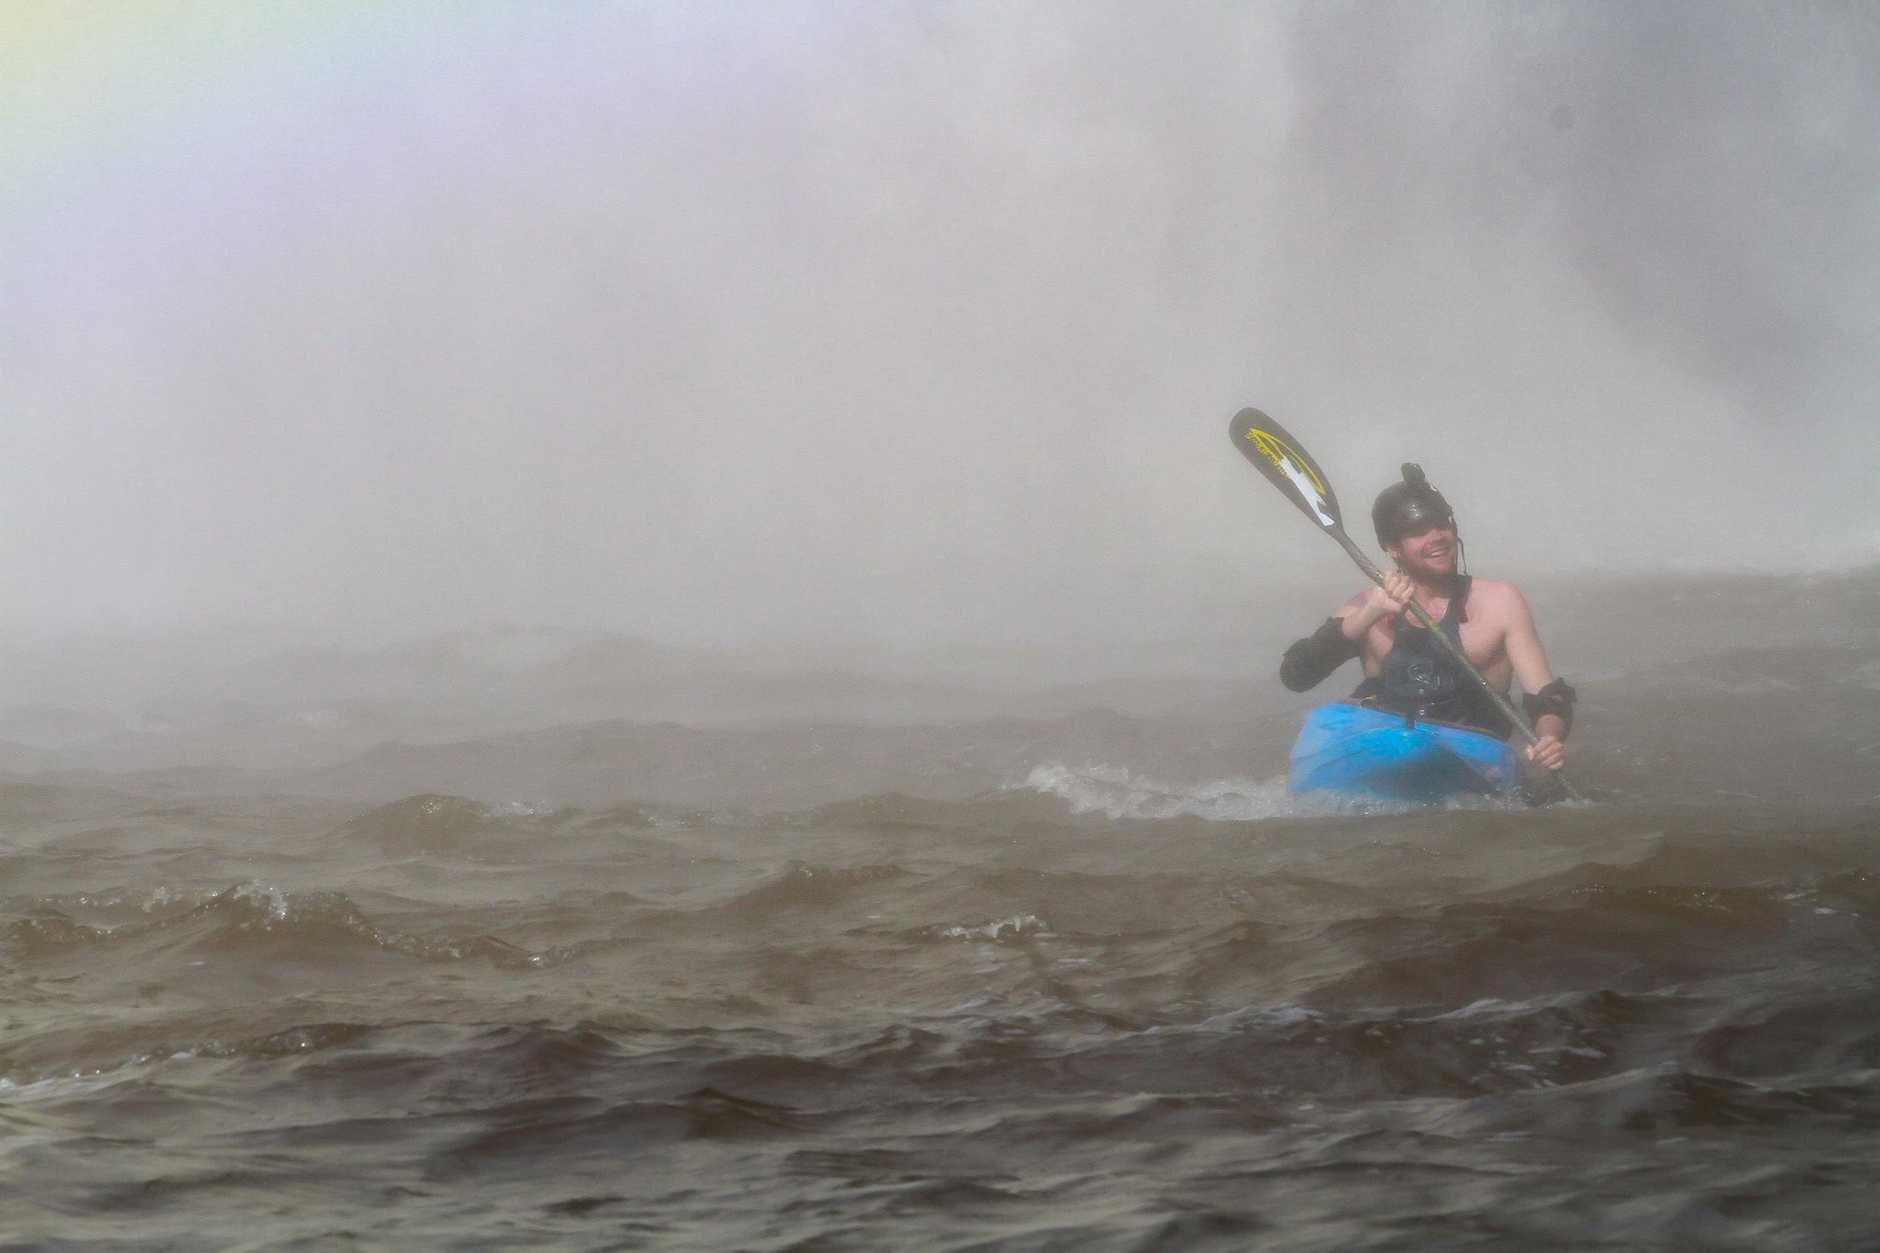 Kayaker Lachie Carracher takes on the 30 metre tall Dangar Falls.